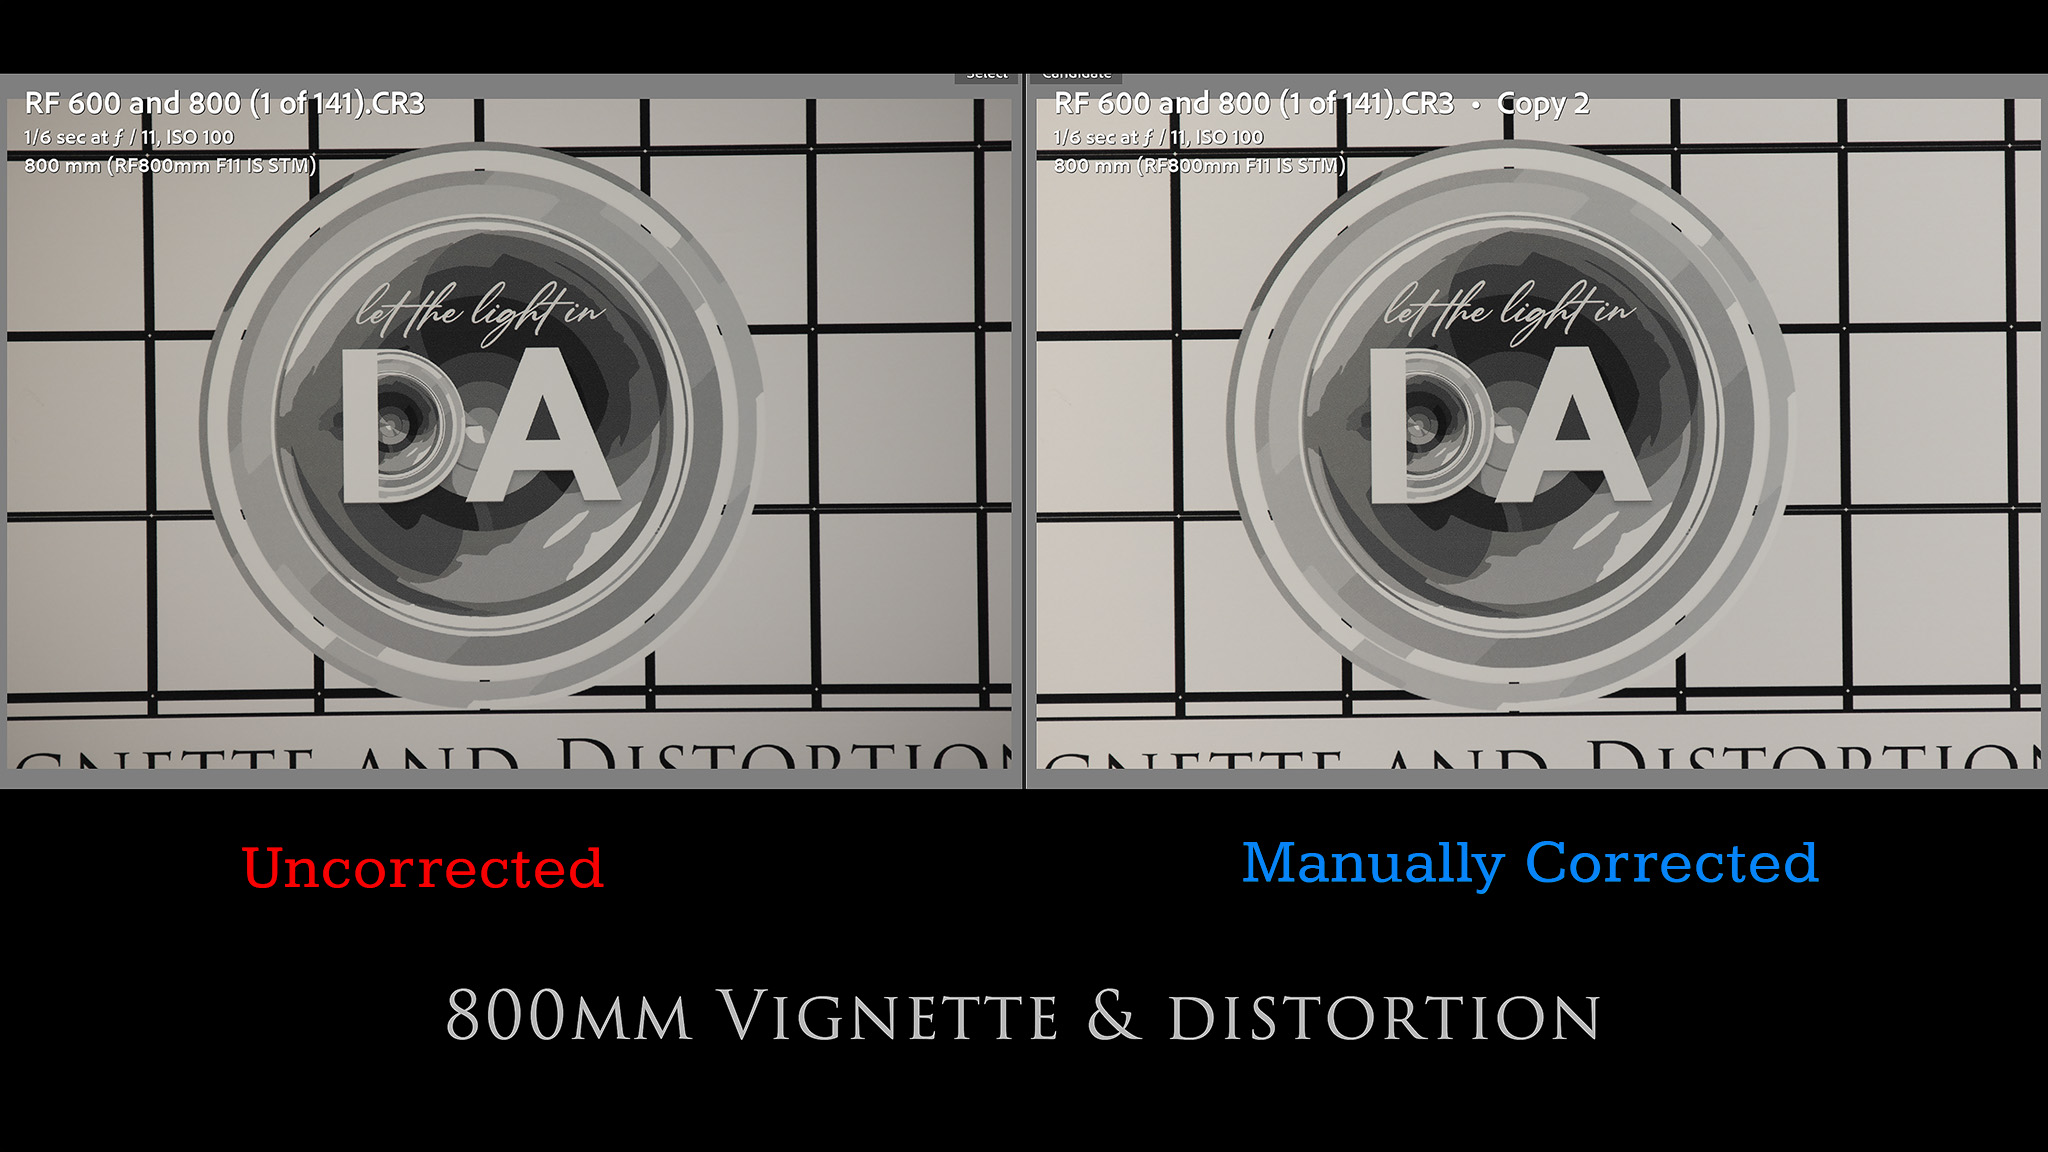 18-Vignette-and-Distortion